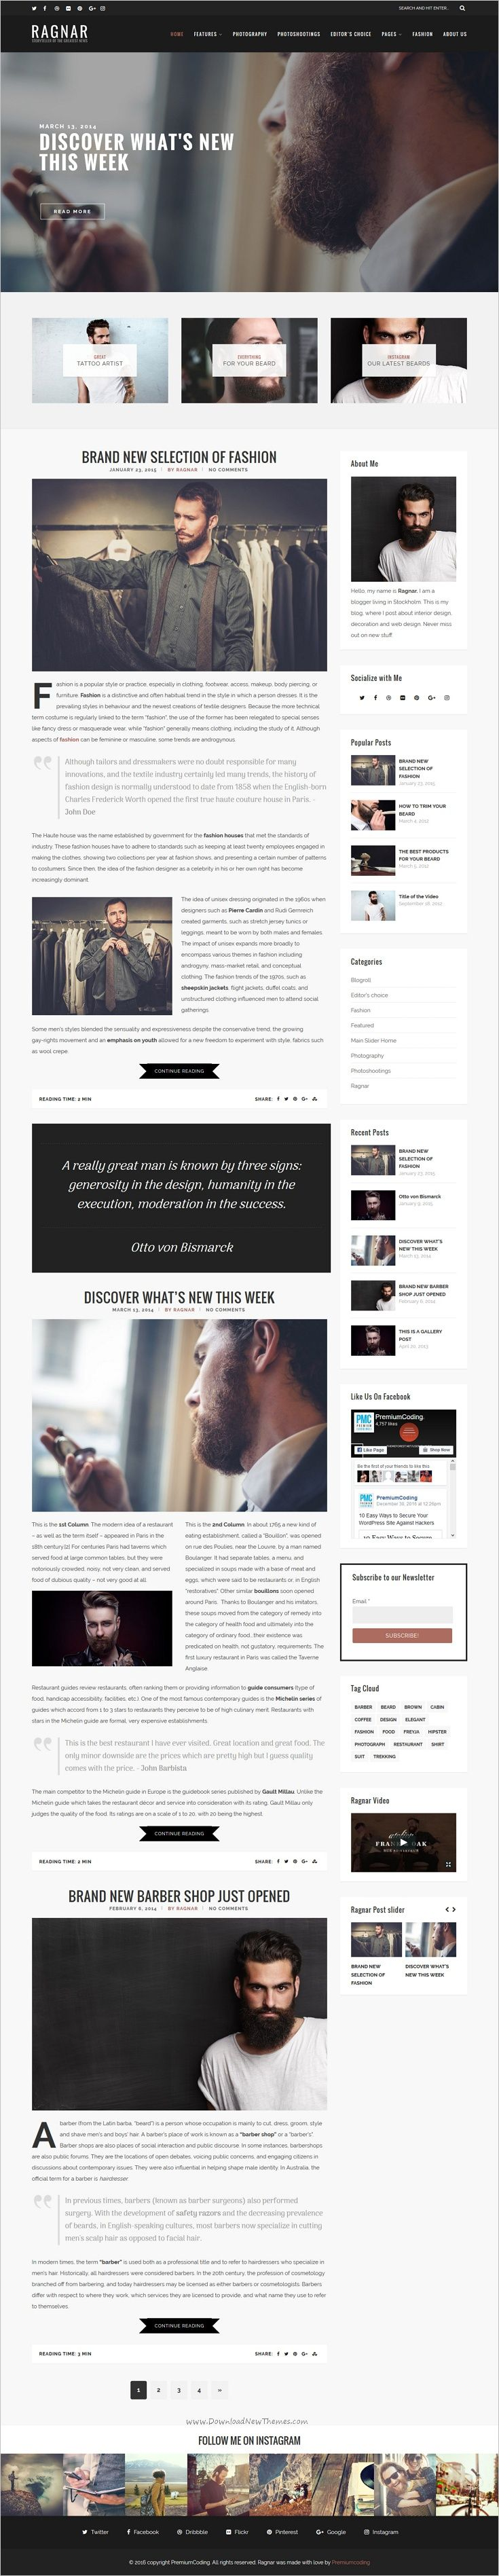 Ragnar is a wonderful responsive bold #WordPress #blog theme for creative #writer, #blogger and storyteller website download now➩ https://themeforest.net/item/ragnar-a-bold-wordpress-blog-theme/19208764?ref=Datasata